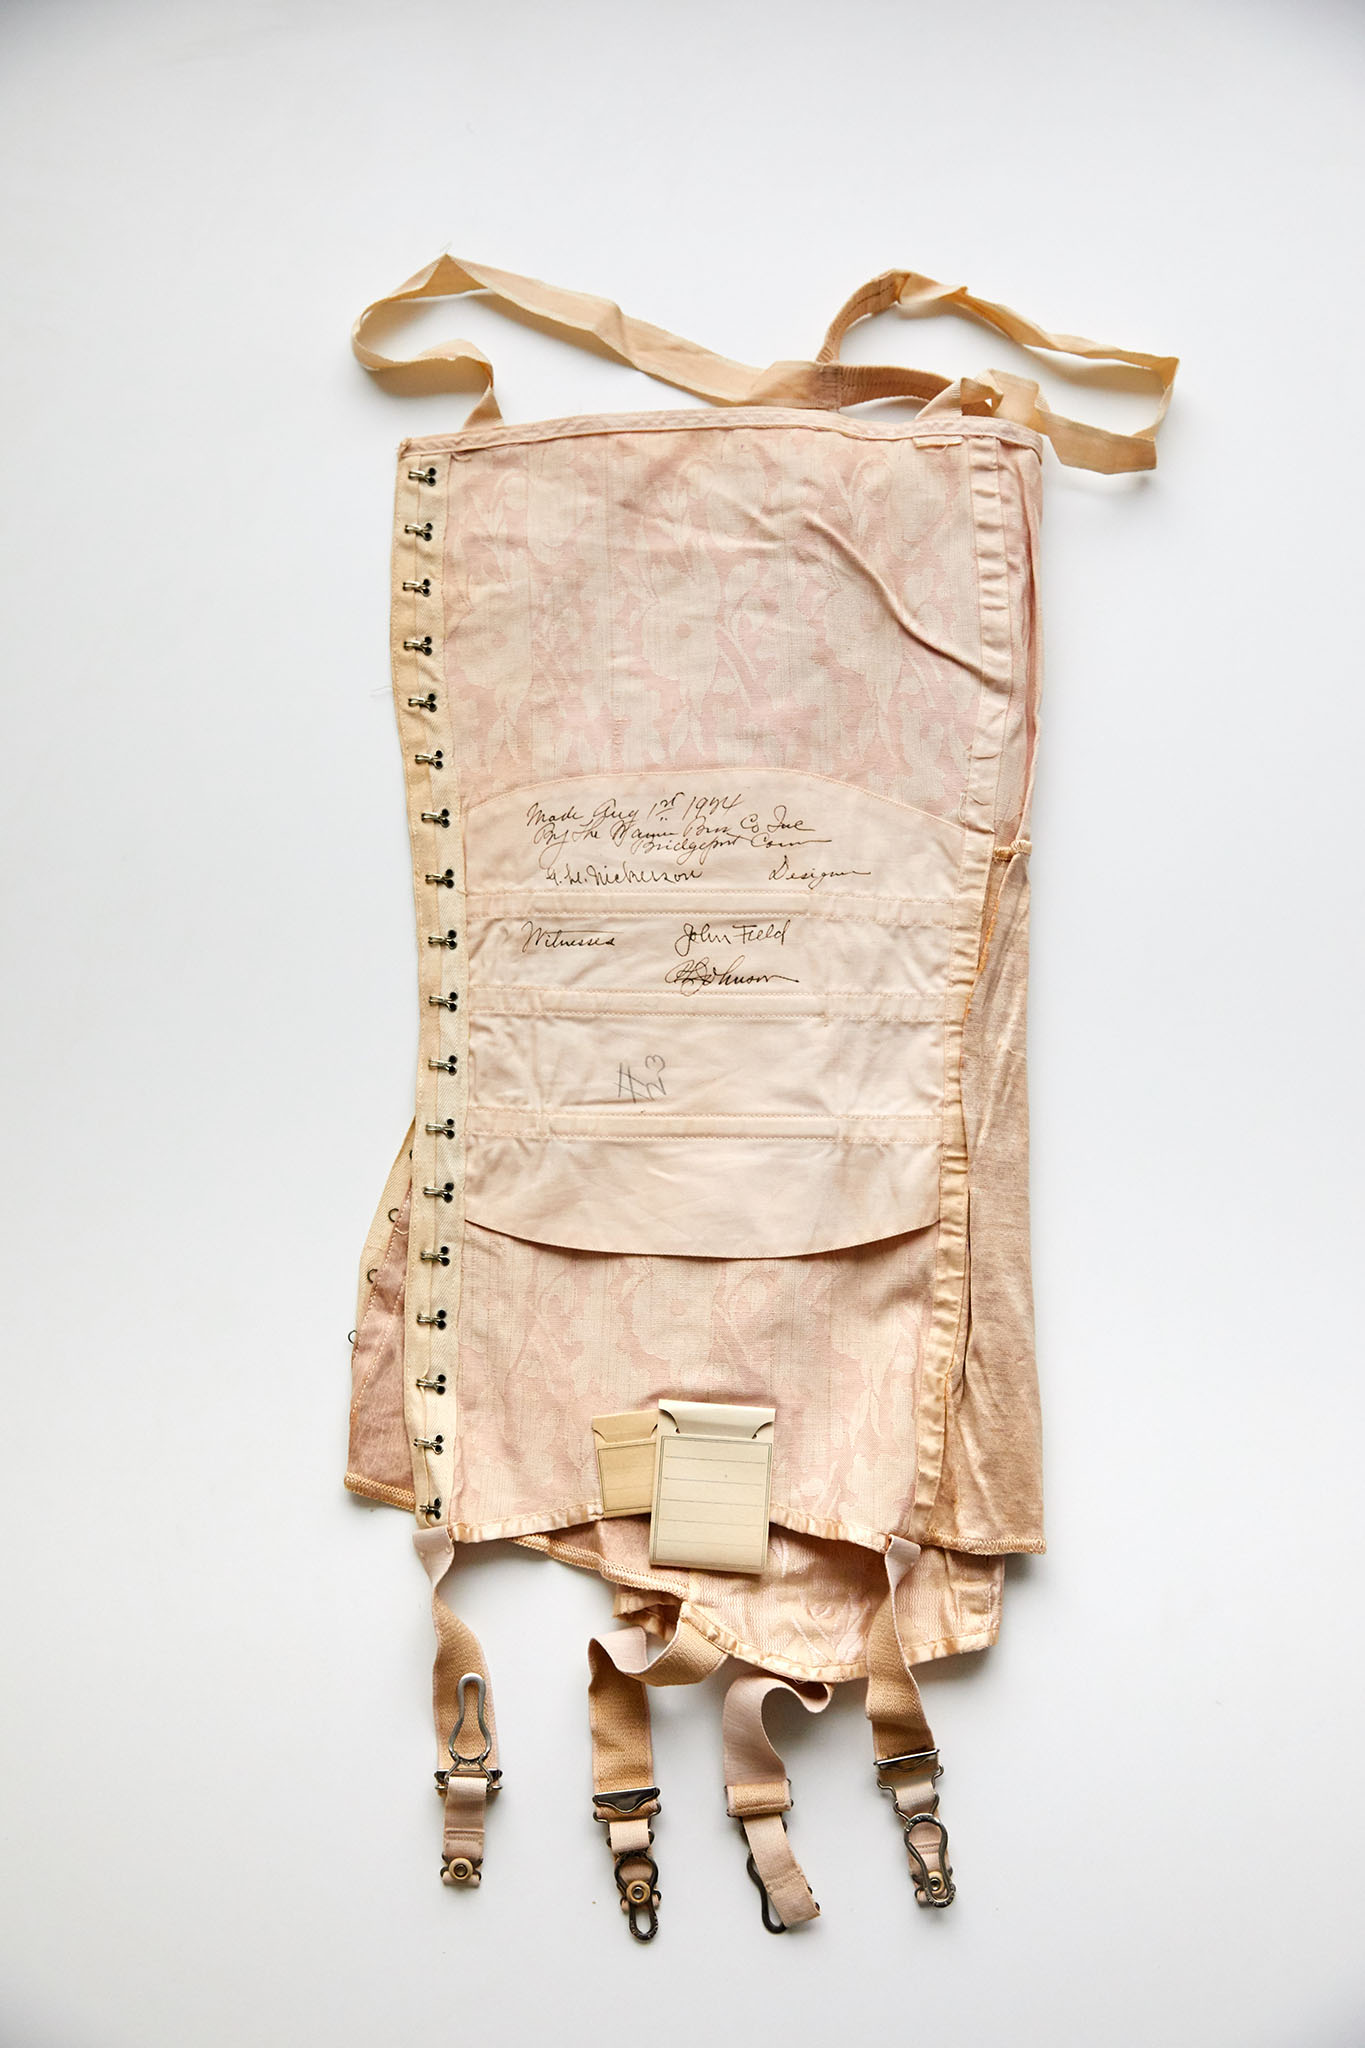 Warner's corselette, signed on Aug. 1, 1924, by company president John Field and others.